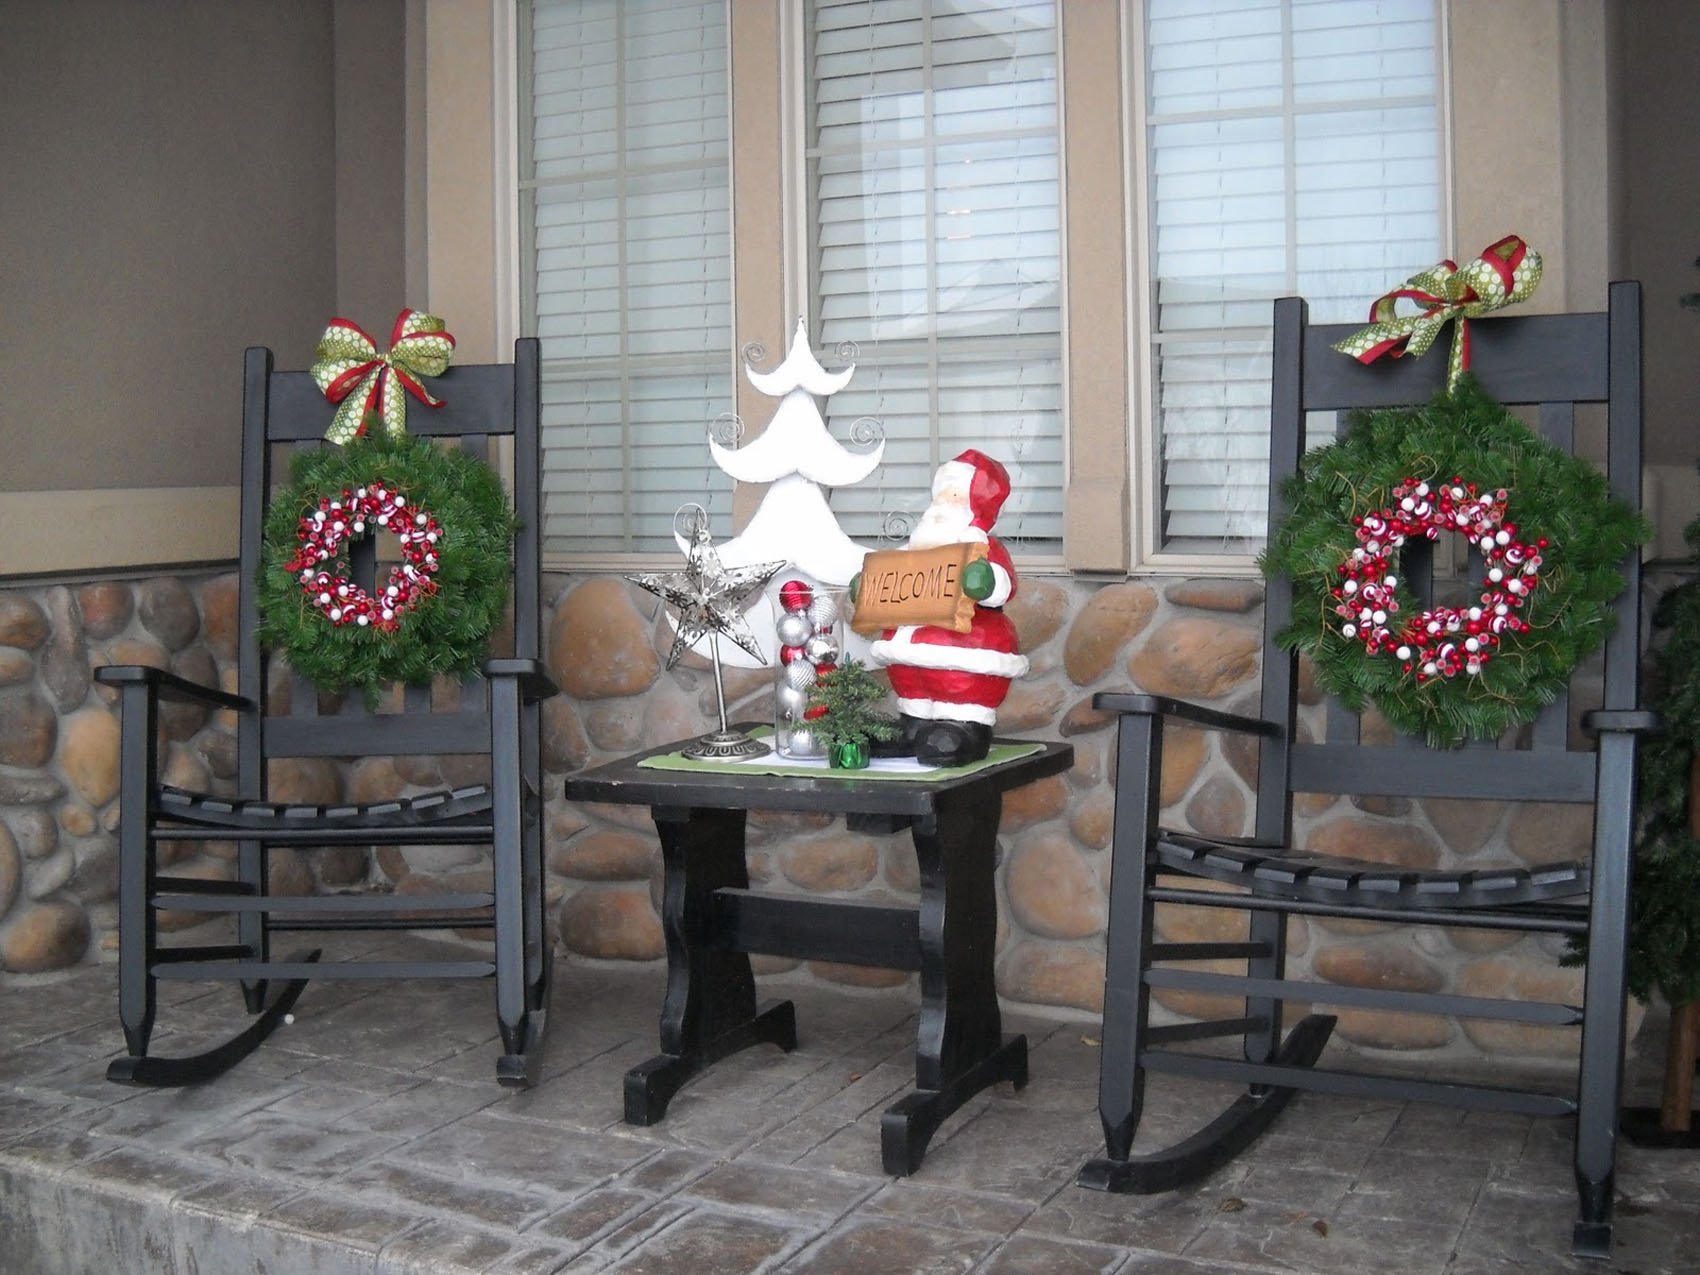 Decoration Ideas Christmas Porch 48686 News And Events